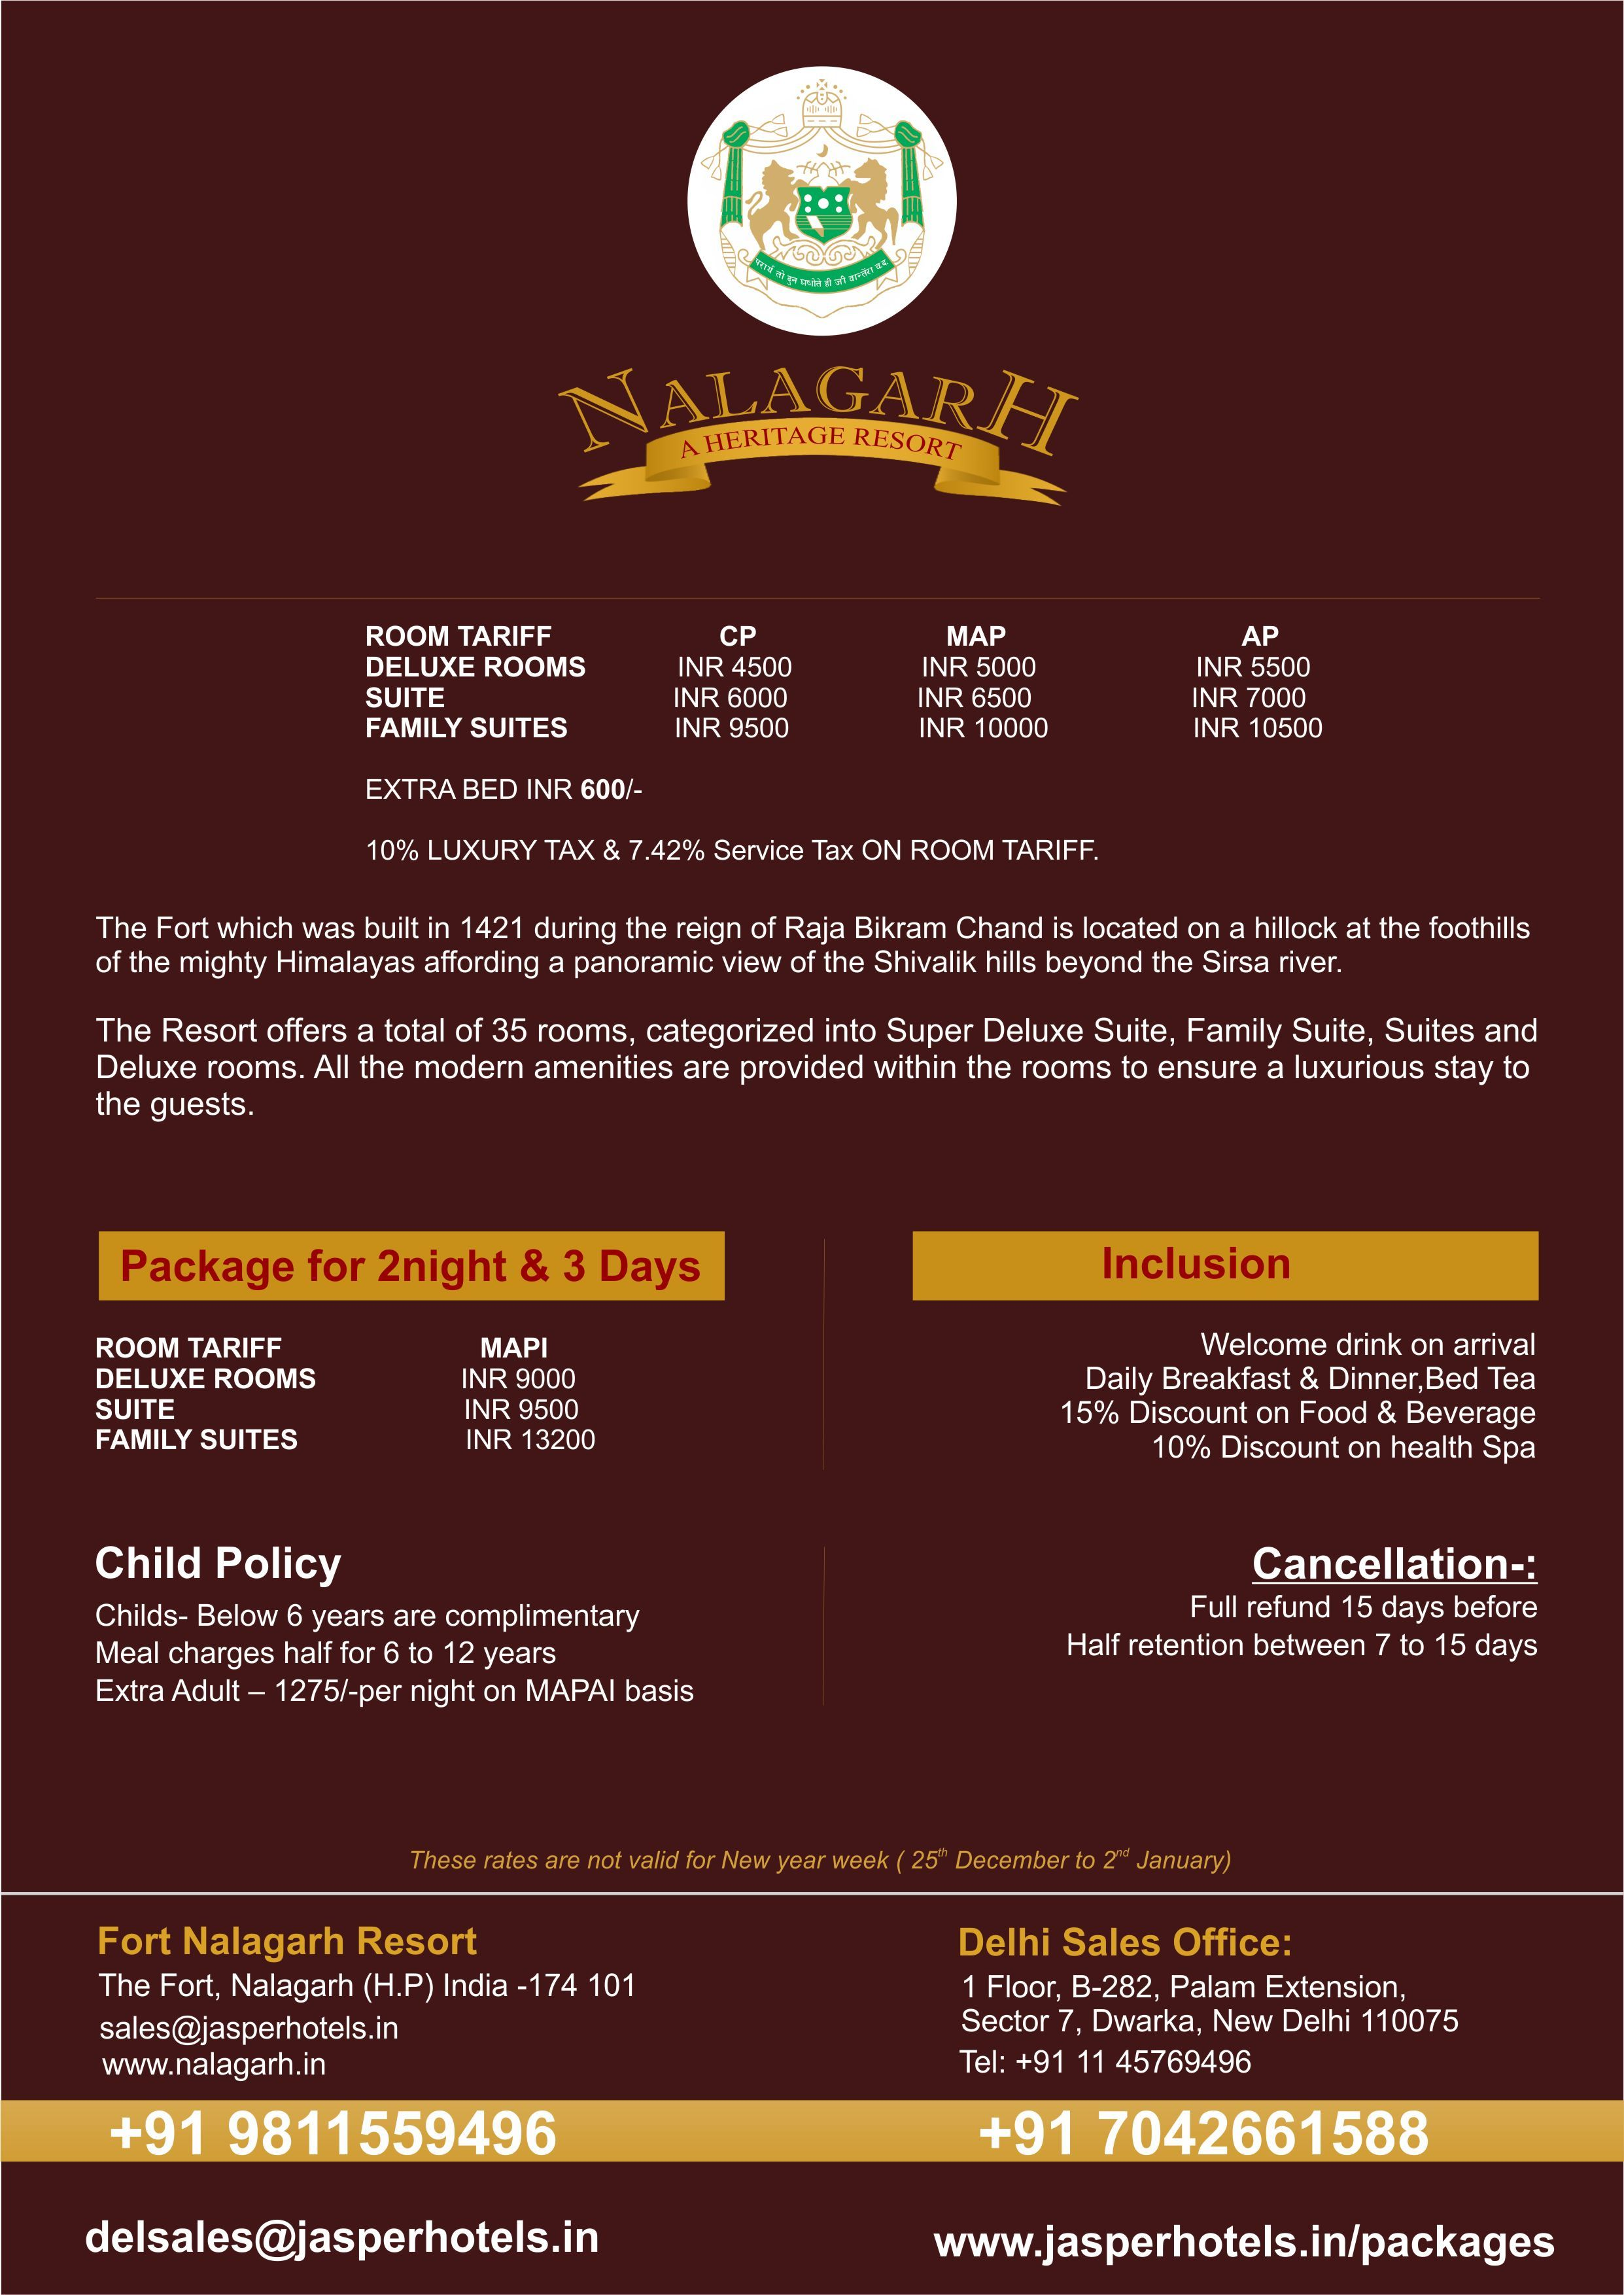 Package for The Fort Nalagarh Fort Nalagarh Pinterest